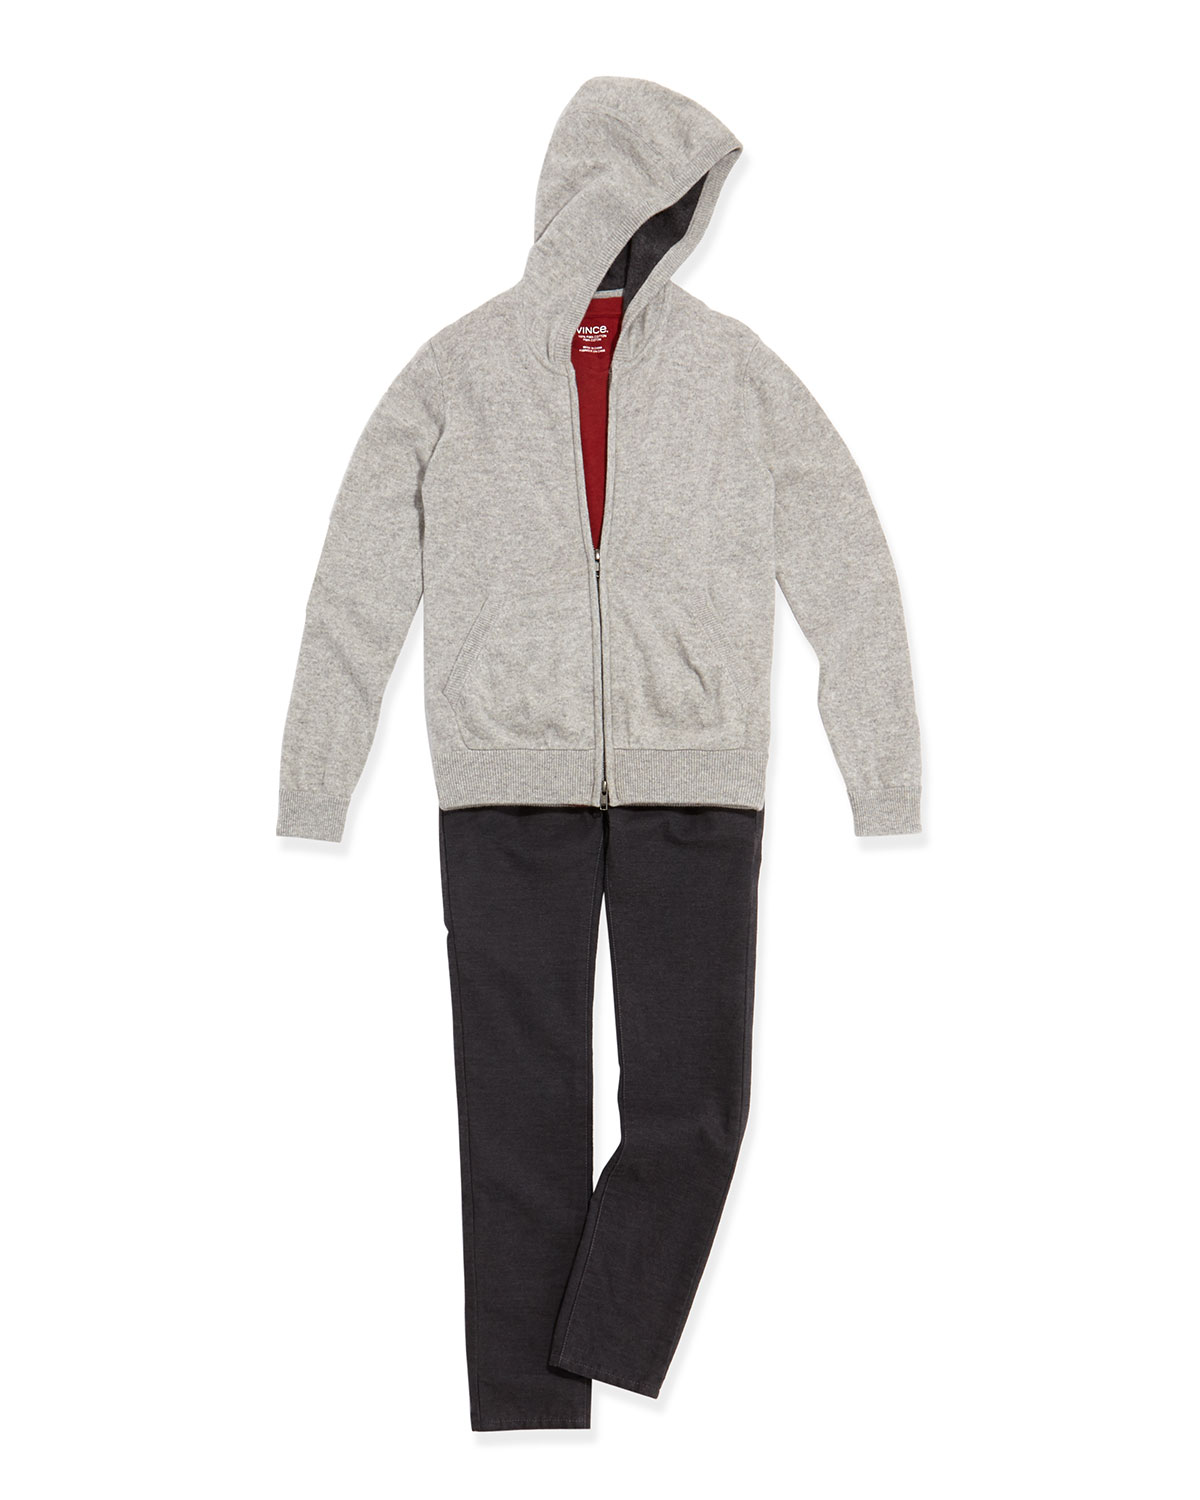 Cashmere Zip Hoodie, Boy's Favorite V-Neck Tee & Brushed Heathered Pants